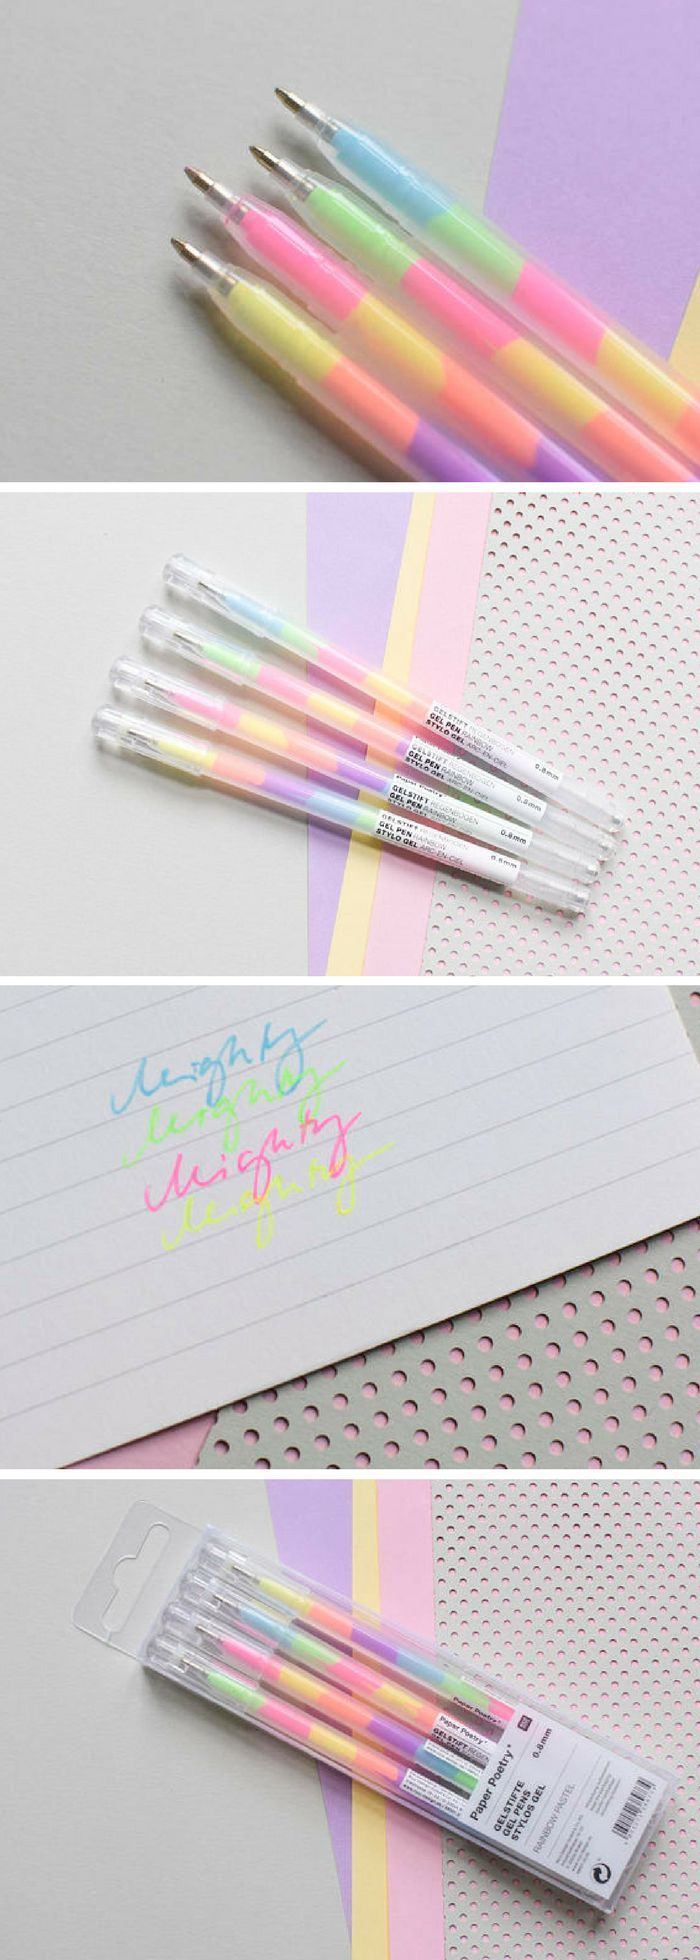 Found on Etsy! I always loved these multicolored pens when I was little, and I just realised how much fun they would be for my bullet journal haha. Just can't get enough cute stationery. #ad #pens #pastel #stationery #kawaii